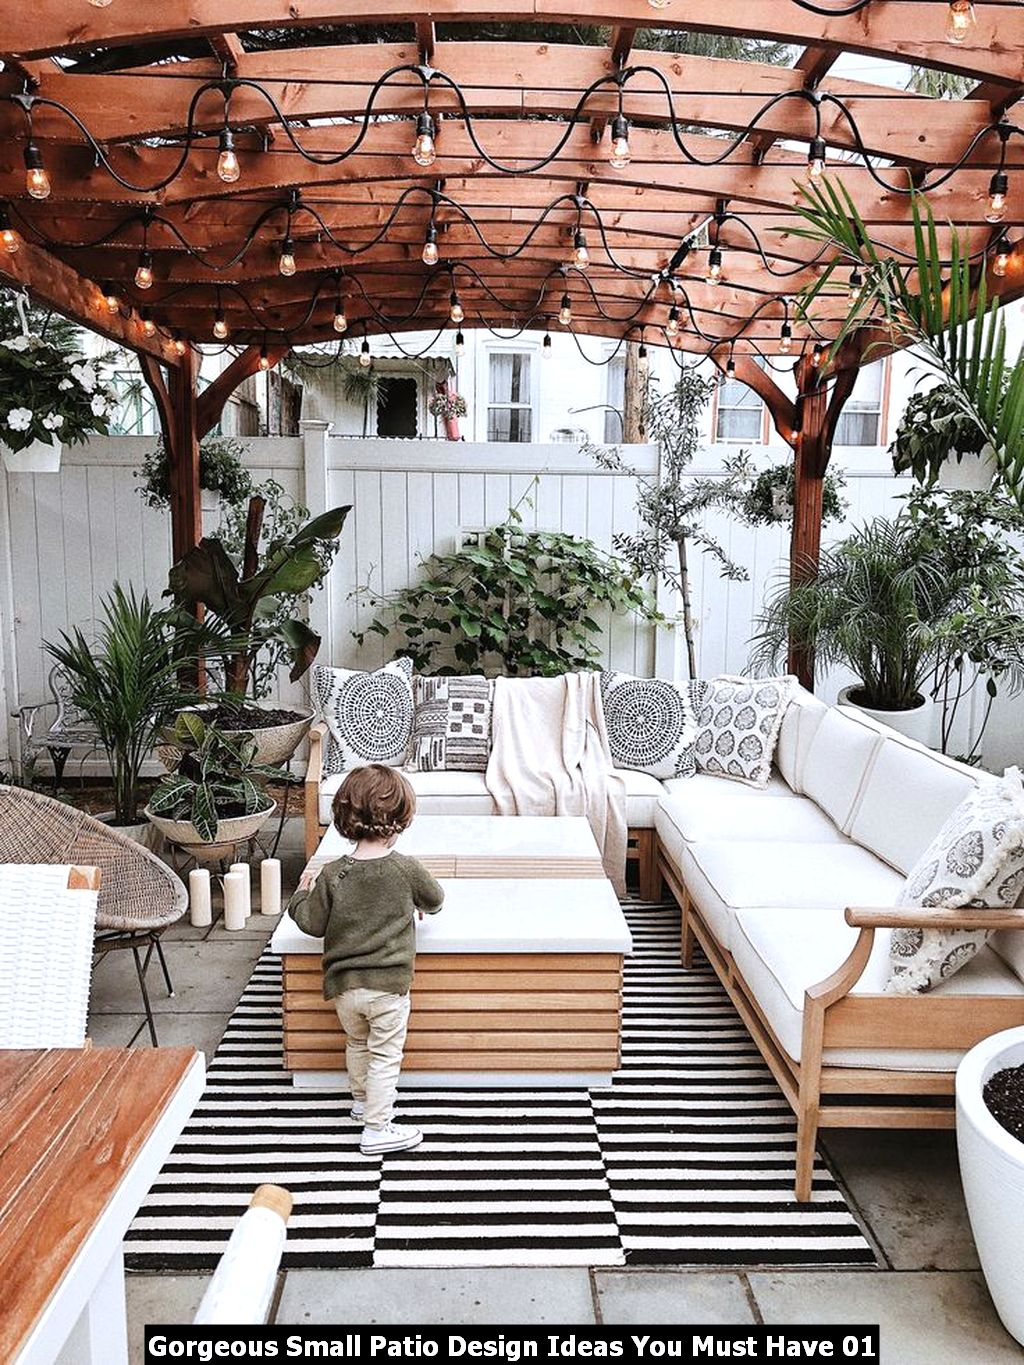 Gorgeous Small Patio Design Ideas You Must Have 01